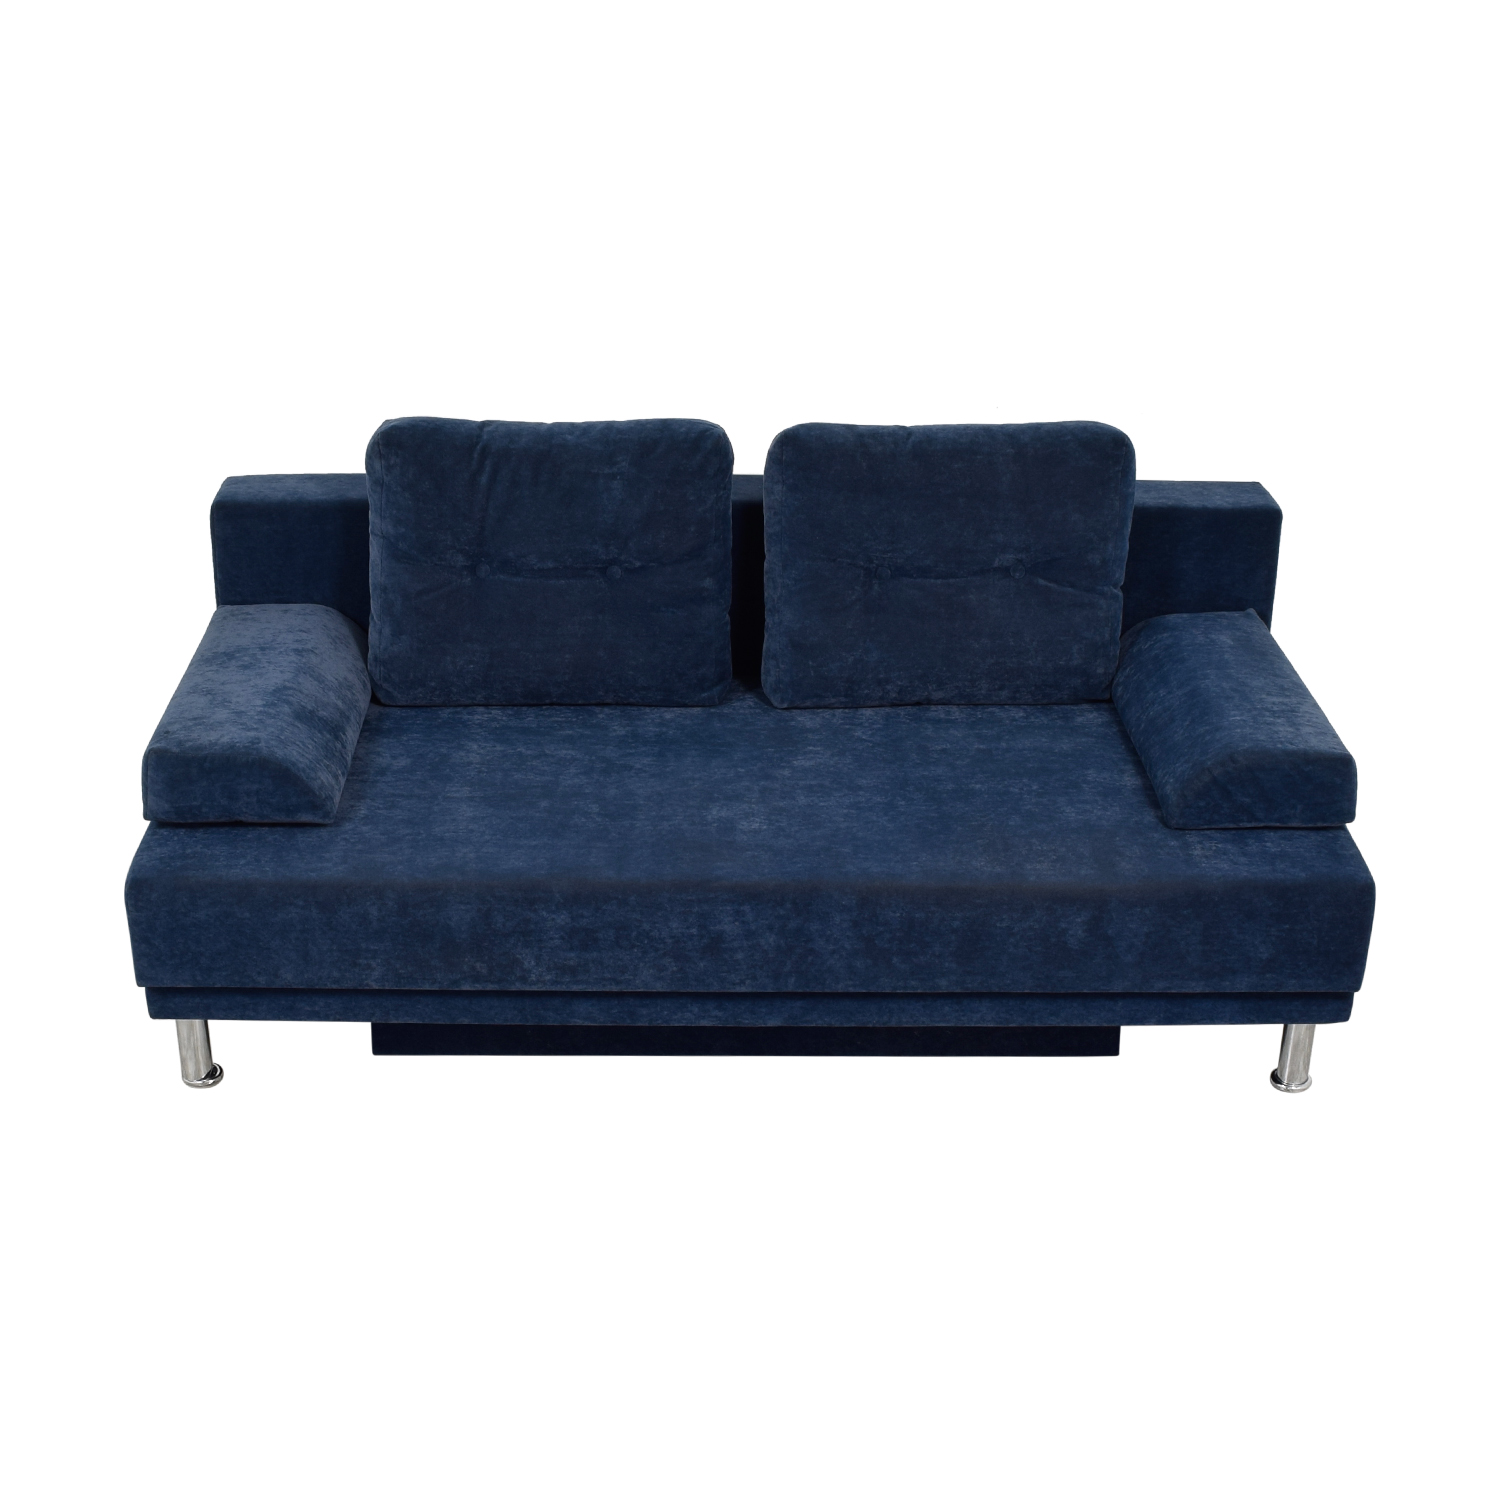 shop Allegro Salotti Allegro Salotti Blue Velvet Covertible Sofa online